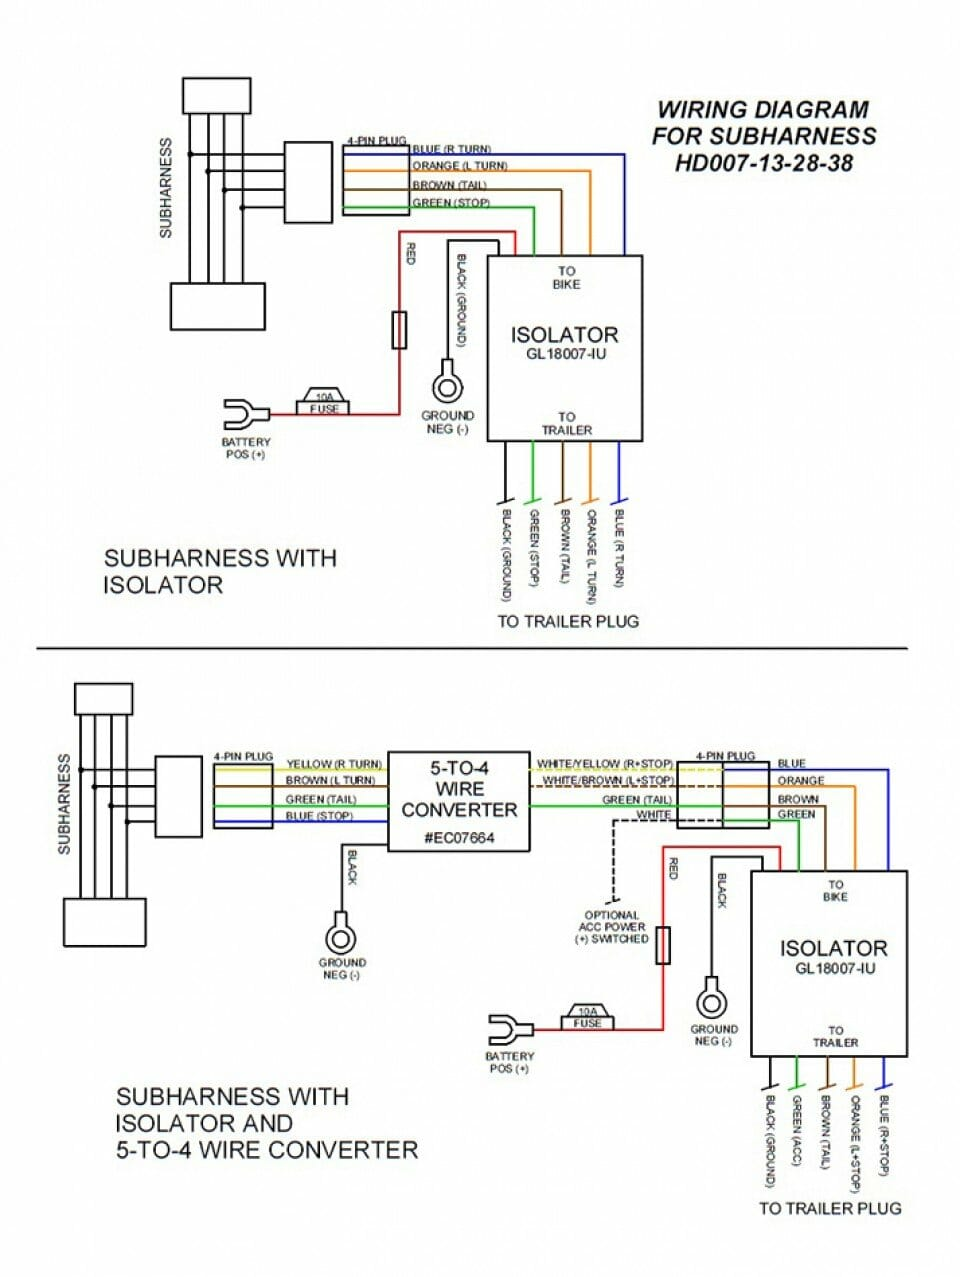 hight resolution of hd007 28 wiring diagram ps web 1